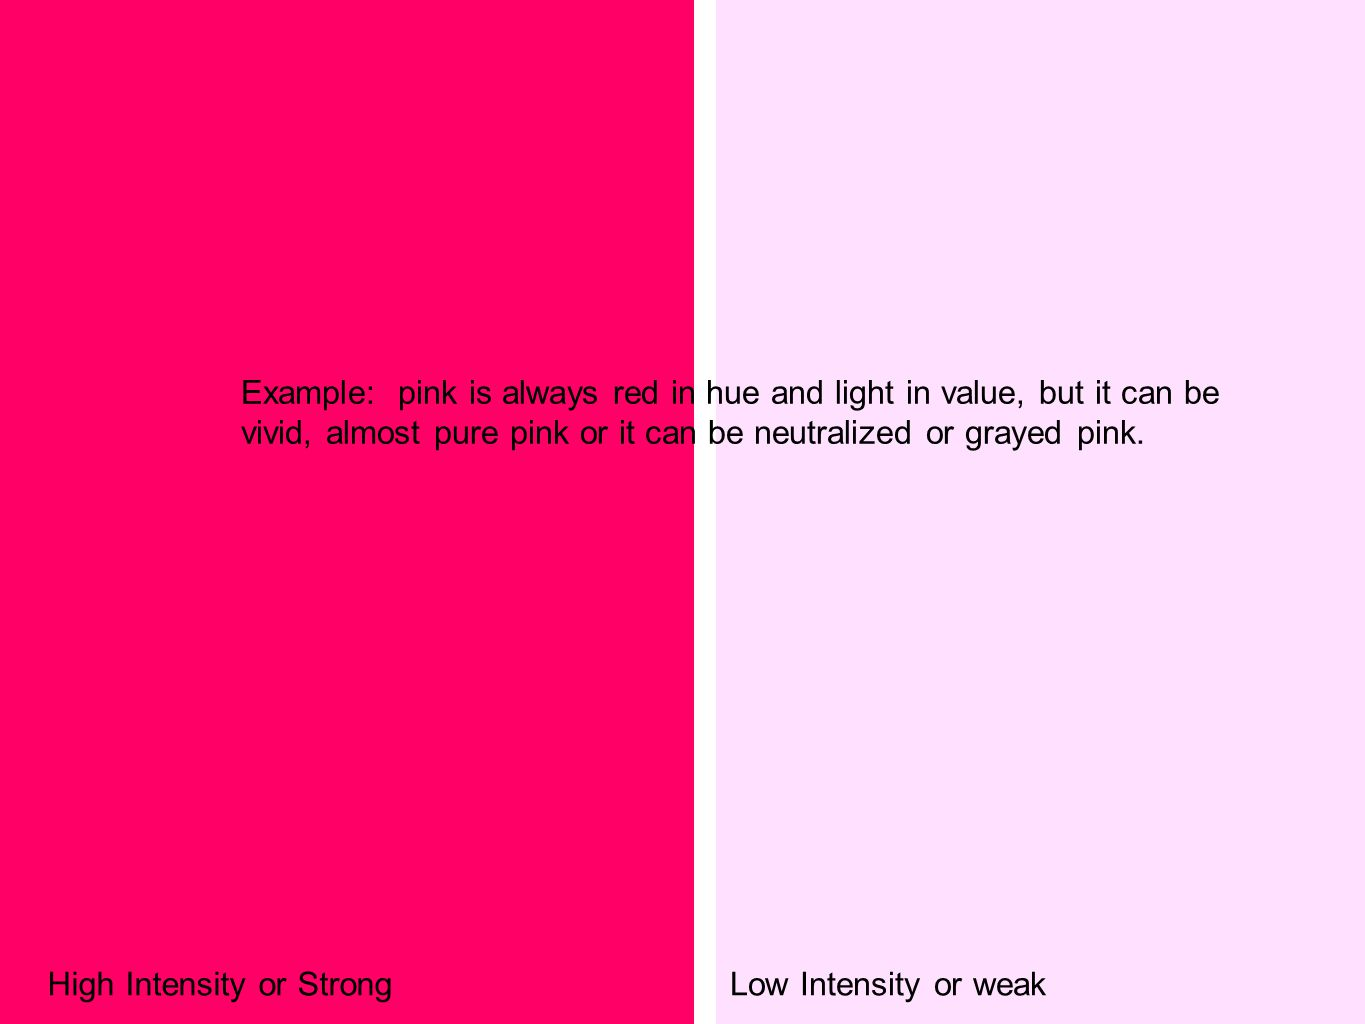 Example: pink is always red in hue and light in value, but it can be vivid, almost pure pink or it can be neutralized or grayed pink.